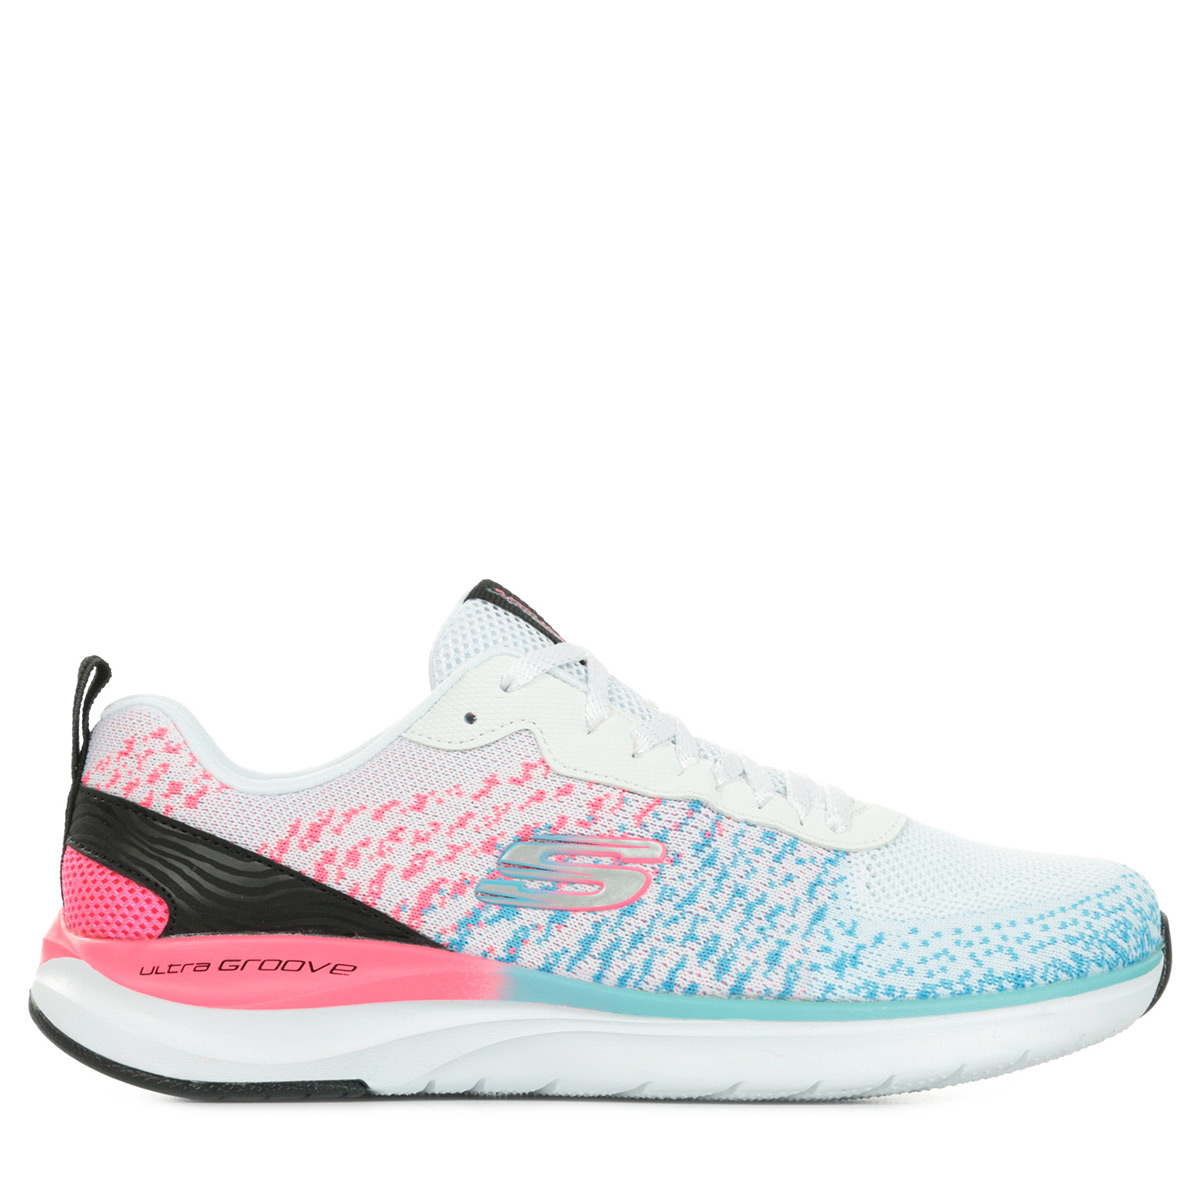 Skechers Ultra Groove Glamour Quest